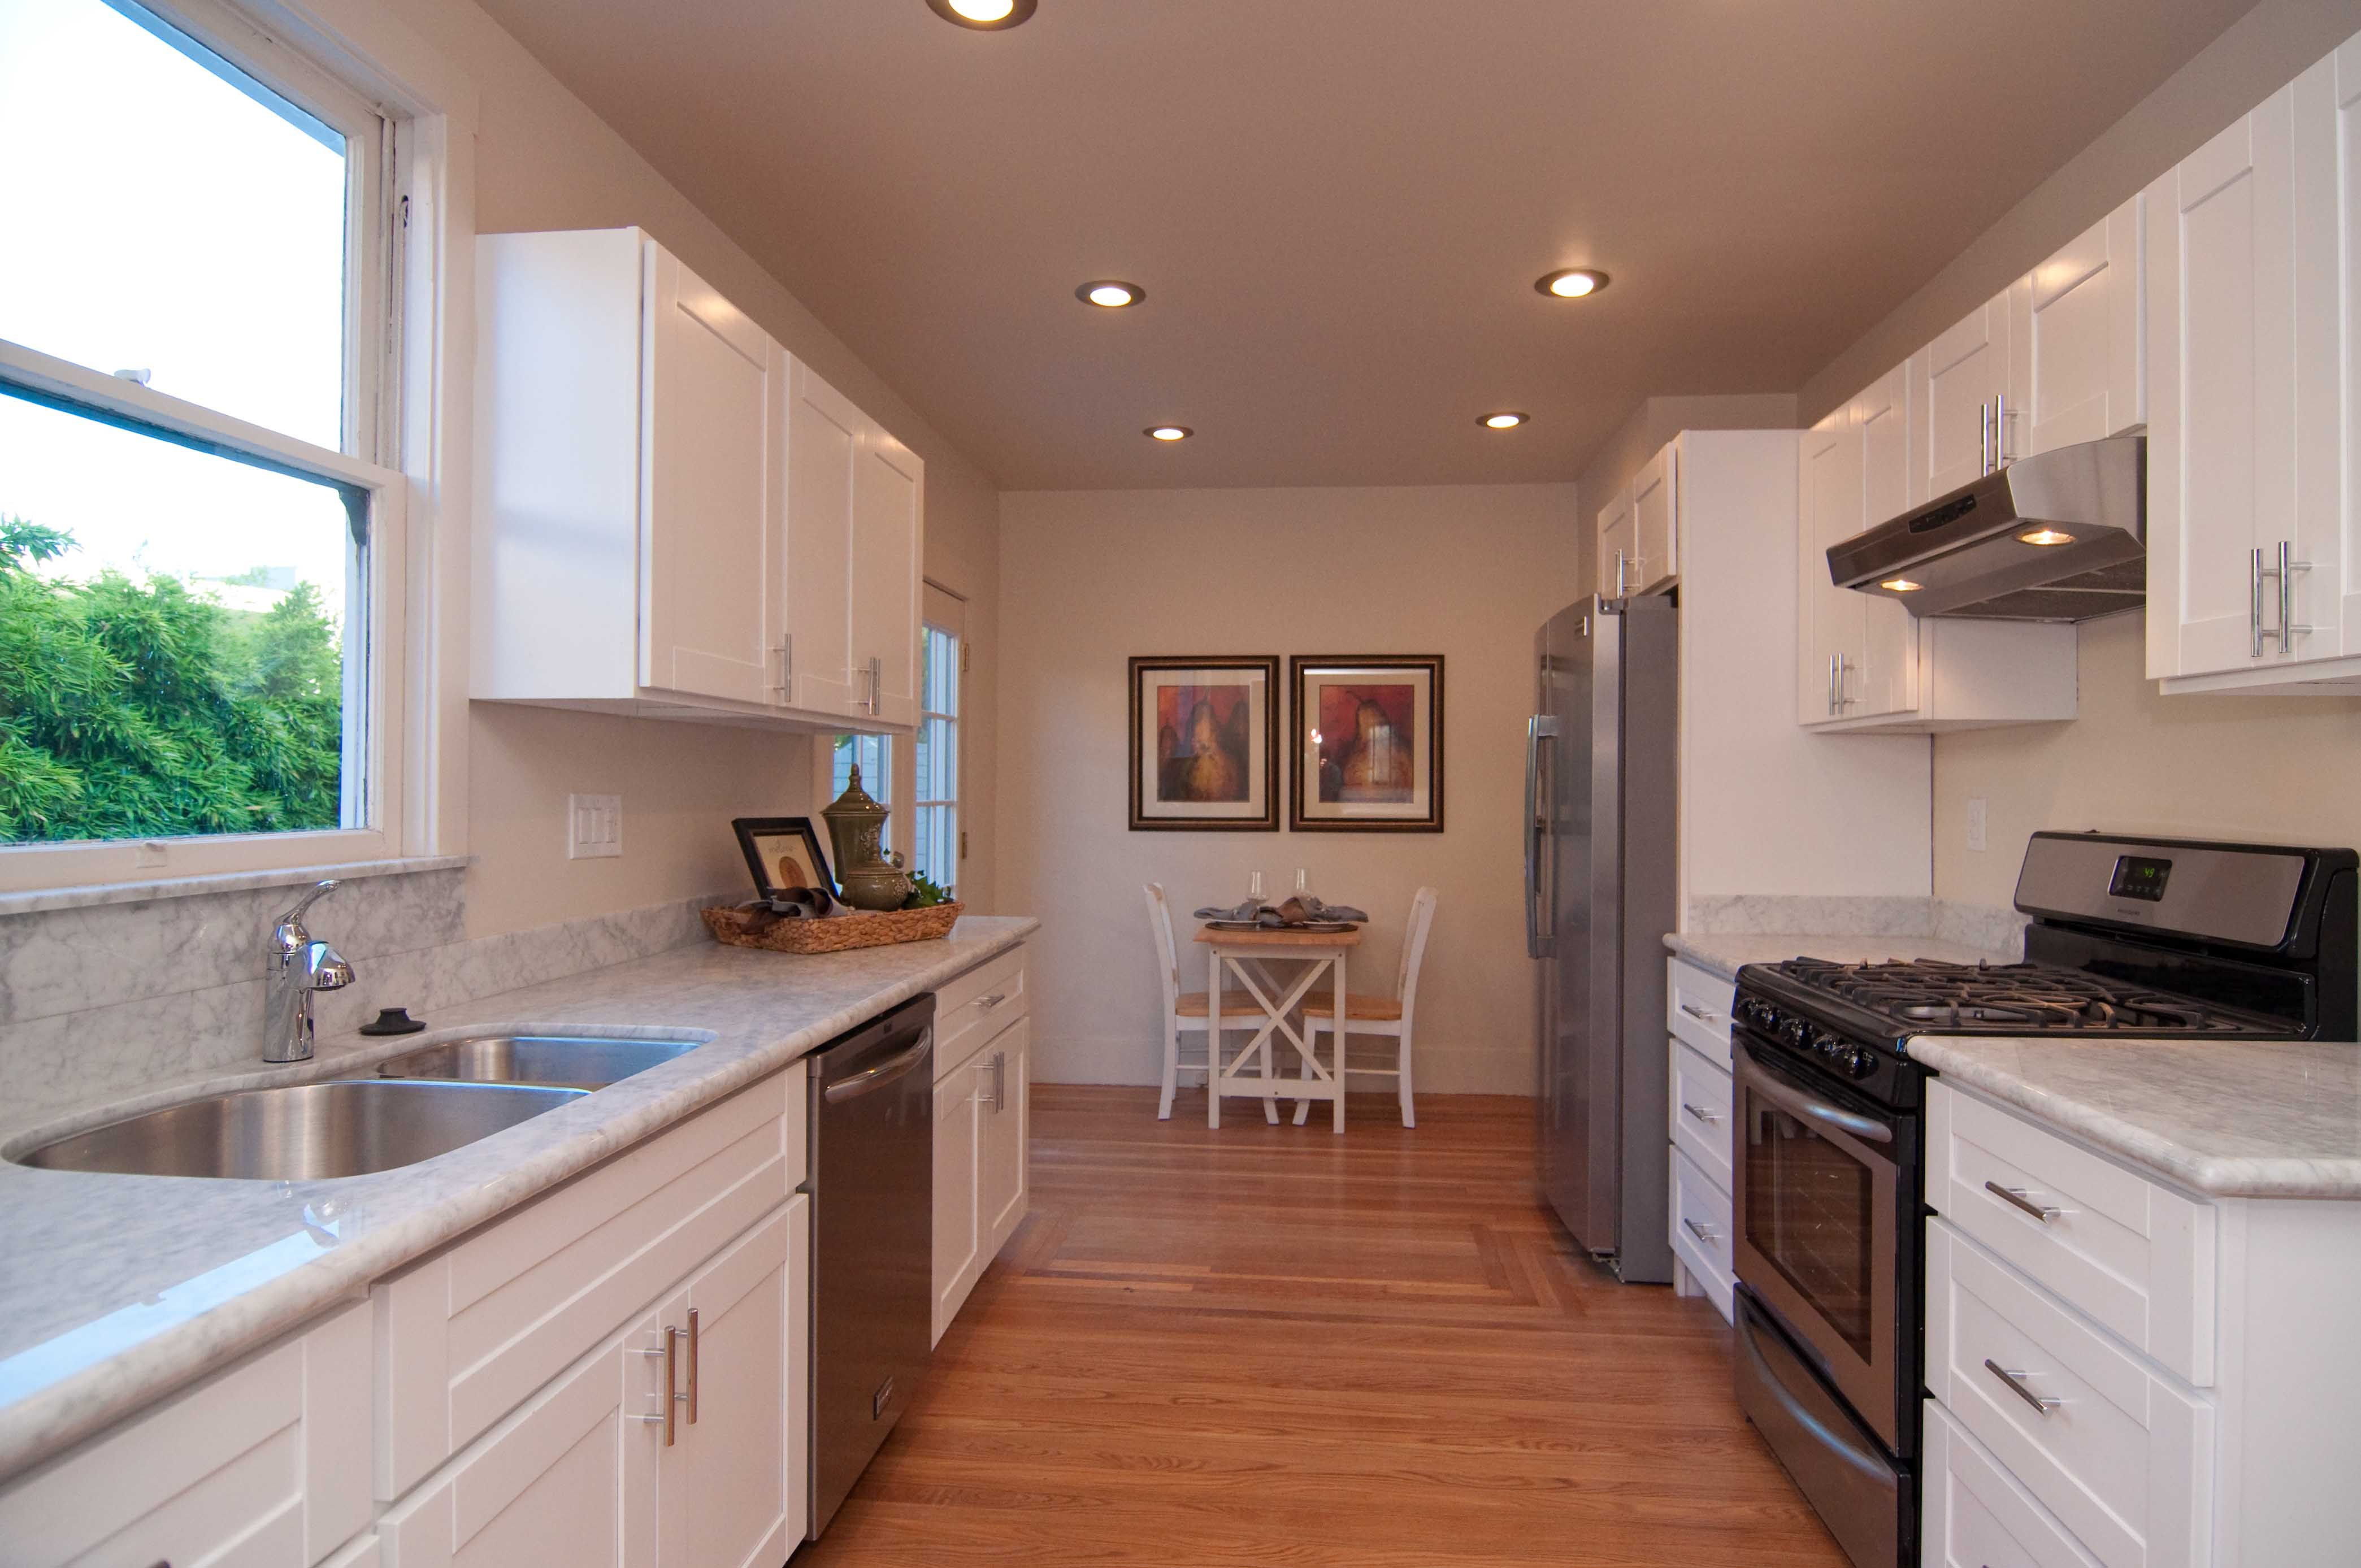 Kitchen Remodel From Oakland Ca Whitecabinets White Cabinets Hardwoodfloor Marblecountertop Residential Remodel Kitchen Marble Countertops